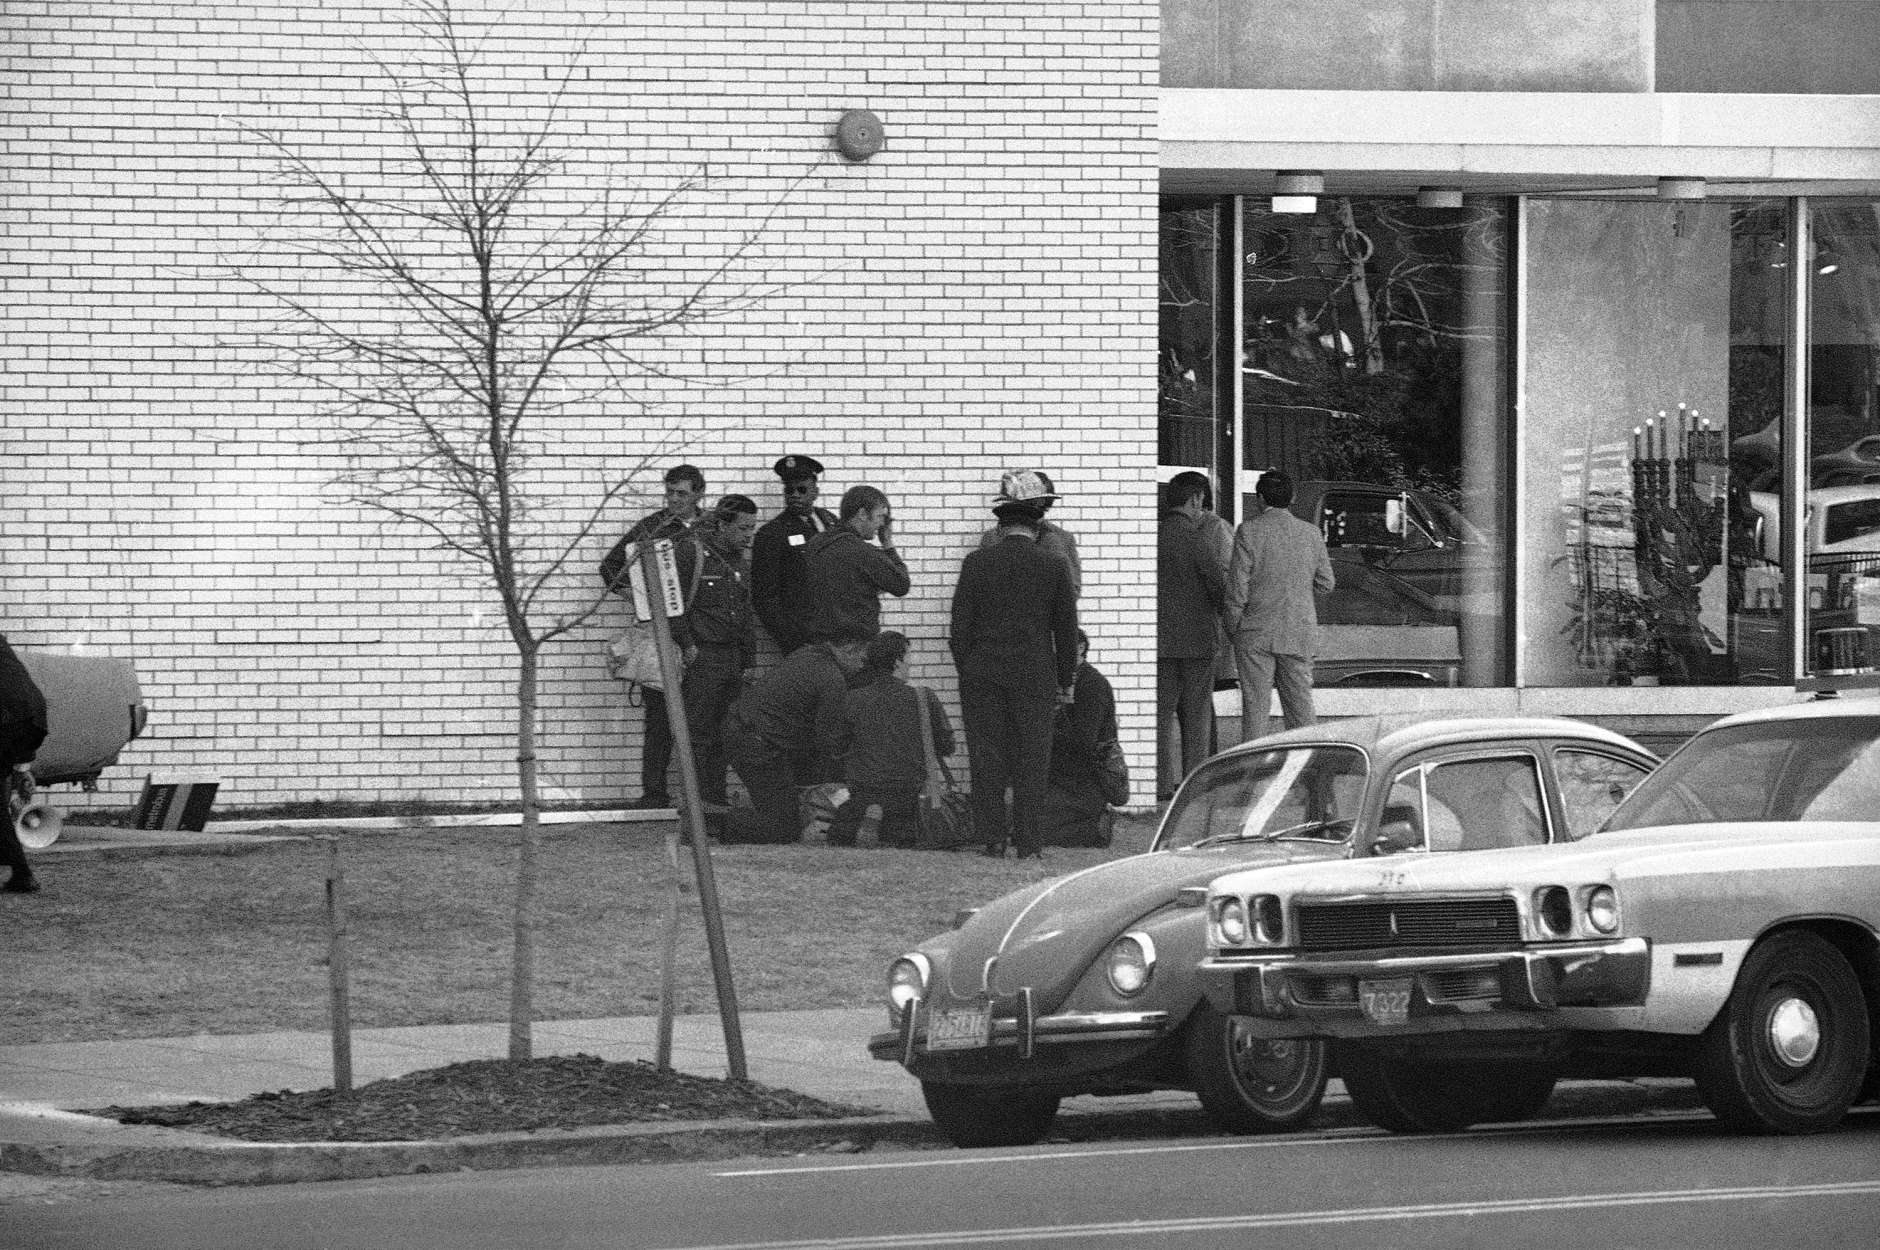 Police and rescue workers give first aid to a victim outside B'Nai B'Rith in Washington on Wednesday, March 9, 1977. Gunmen have taken hostages inside. (AP Photo)